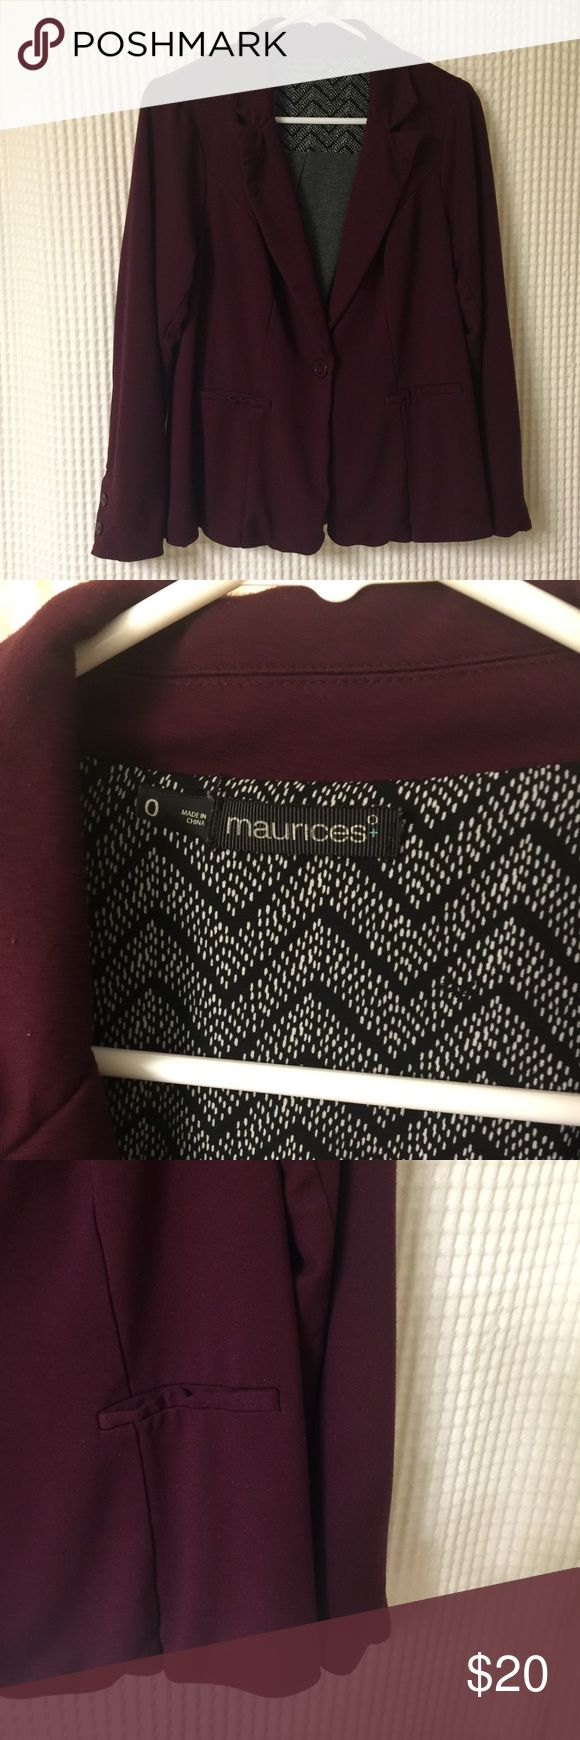 Maurice's Blazer/Jacket, Plus Size 0 Maurice's plus size jacket/Blazer, Maurice's plus size 0. Is a darker purple or eggplant color. Very soft fabric. Is in great condition and comes from a pet free/smoke free home. Maurices Jackets & Coats Blazers